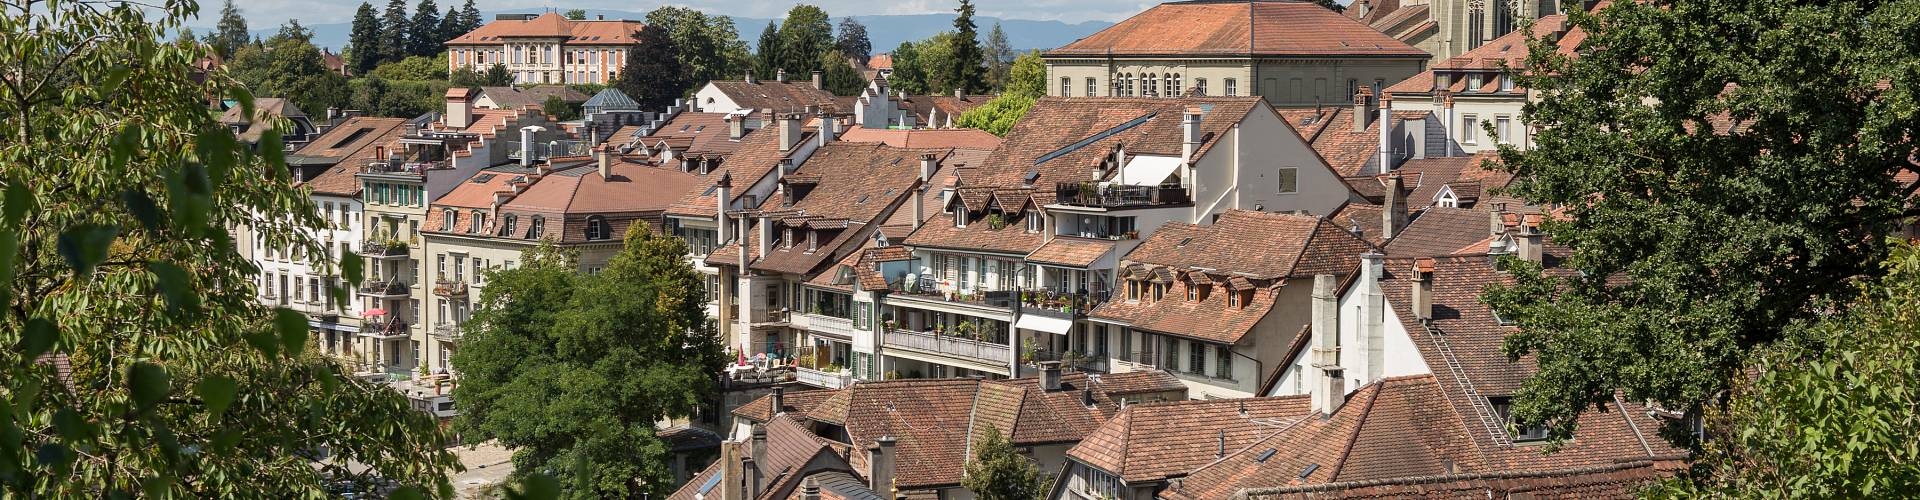 RE/MAX Immobilien Burgdorf